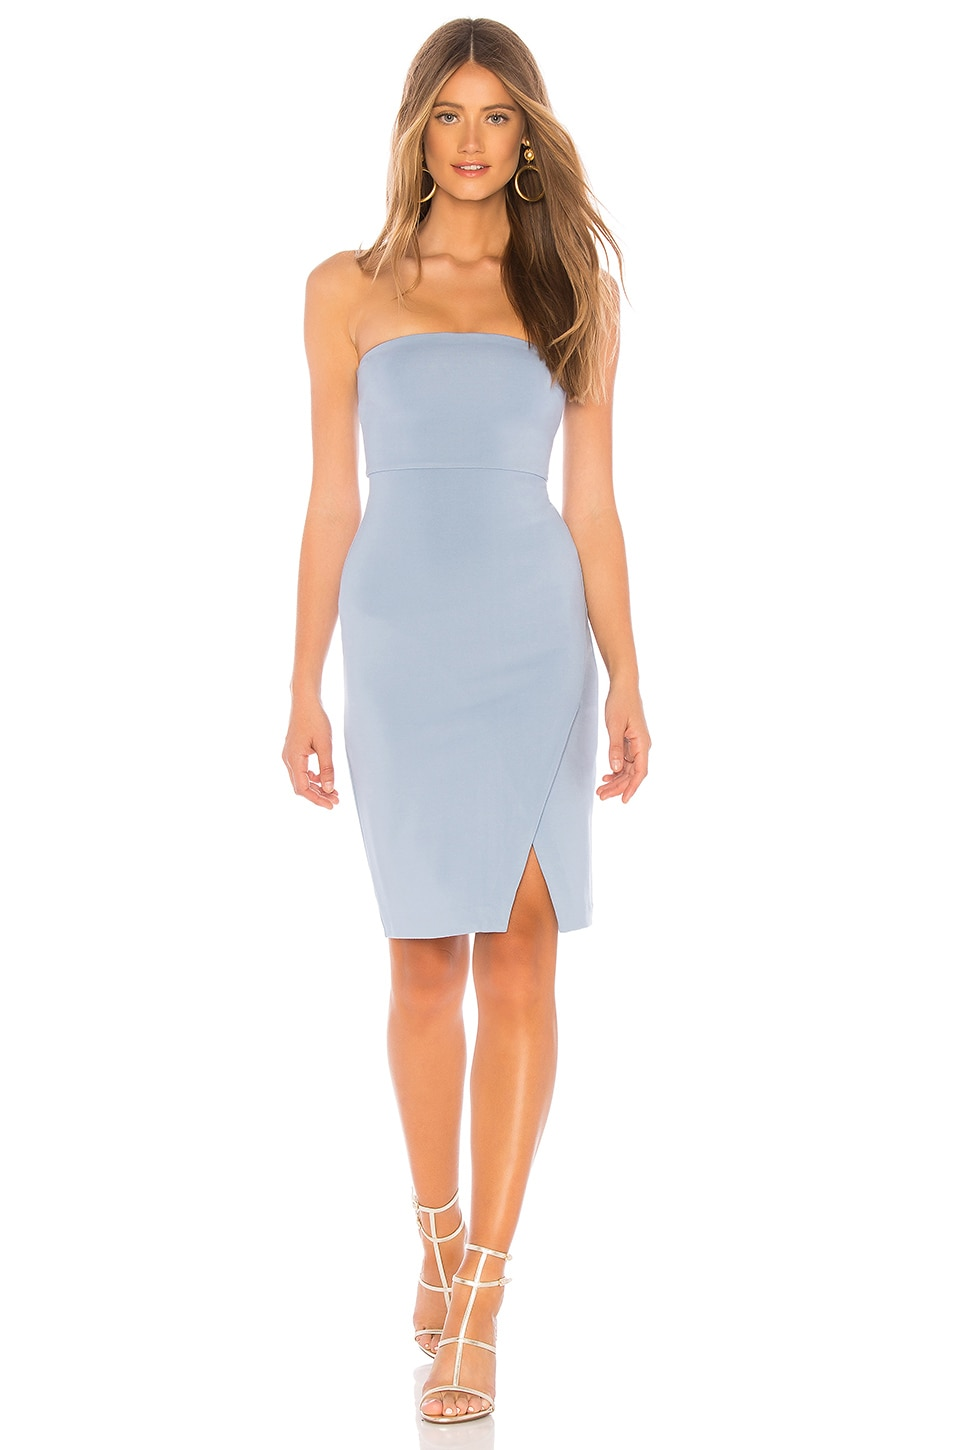 NBD Wailea Midi Dress in Baby Blue